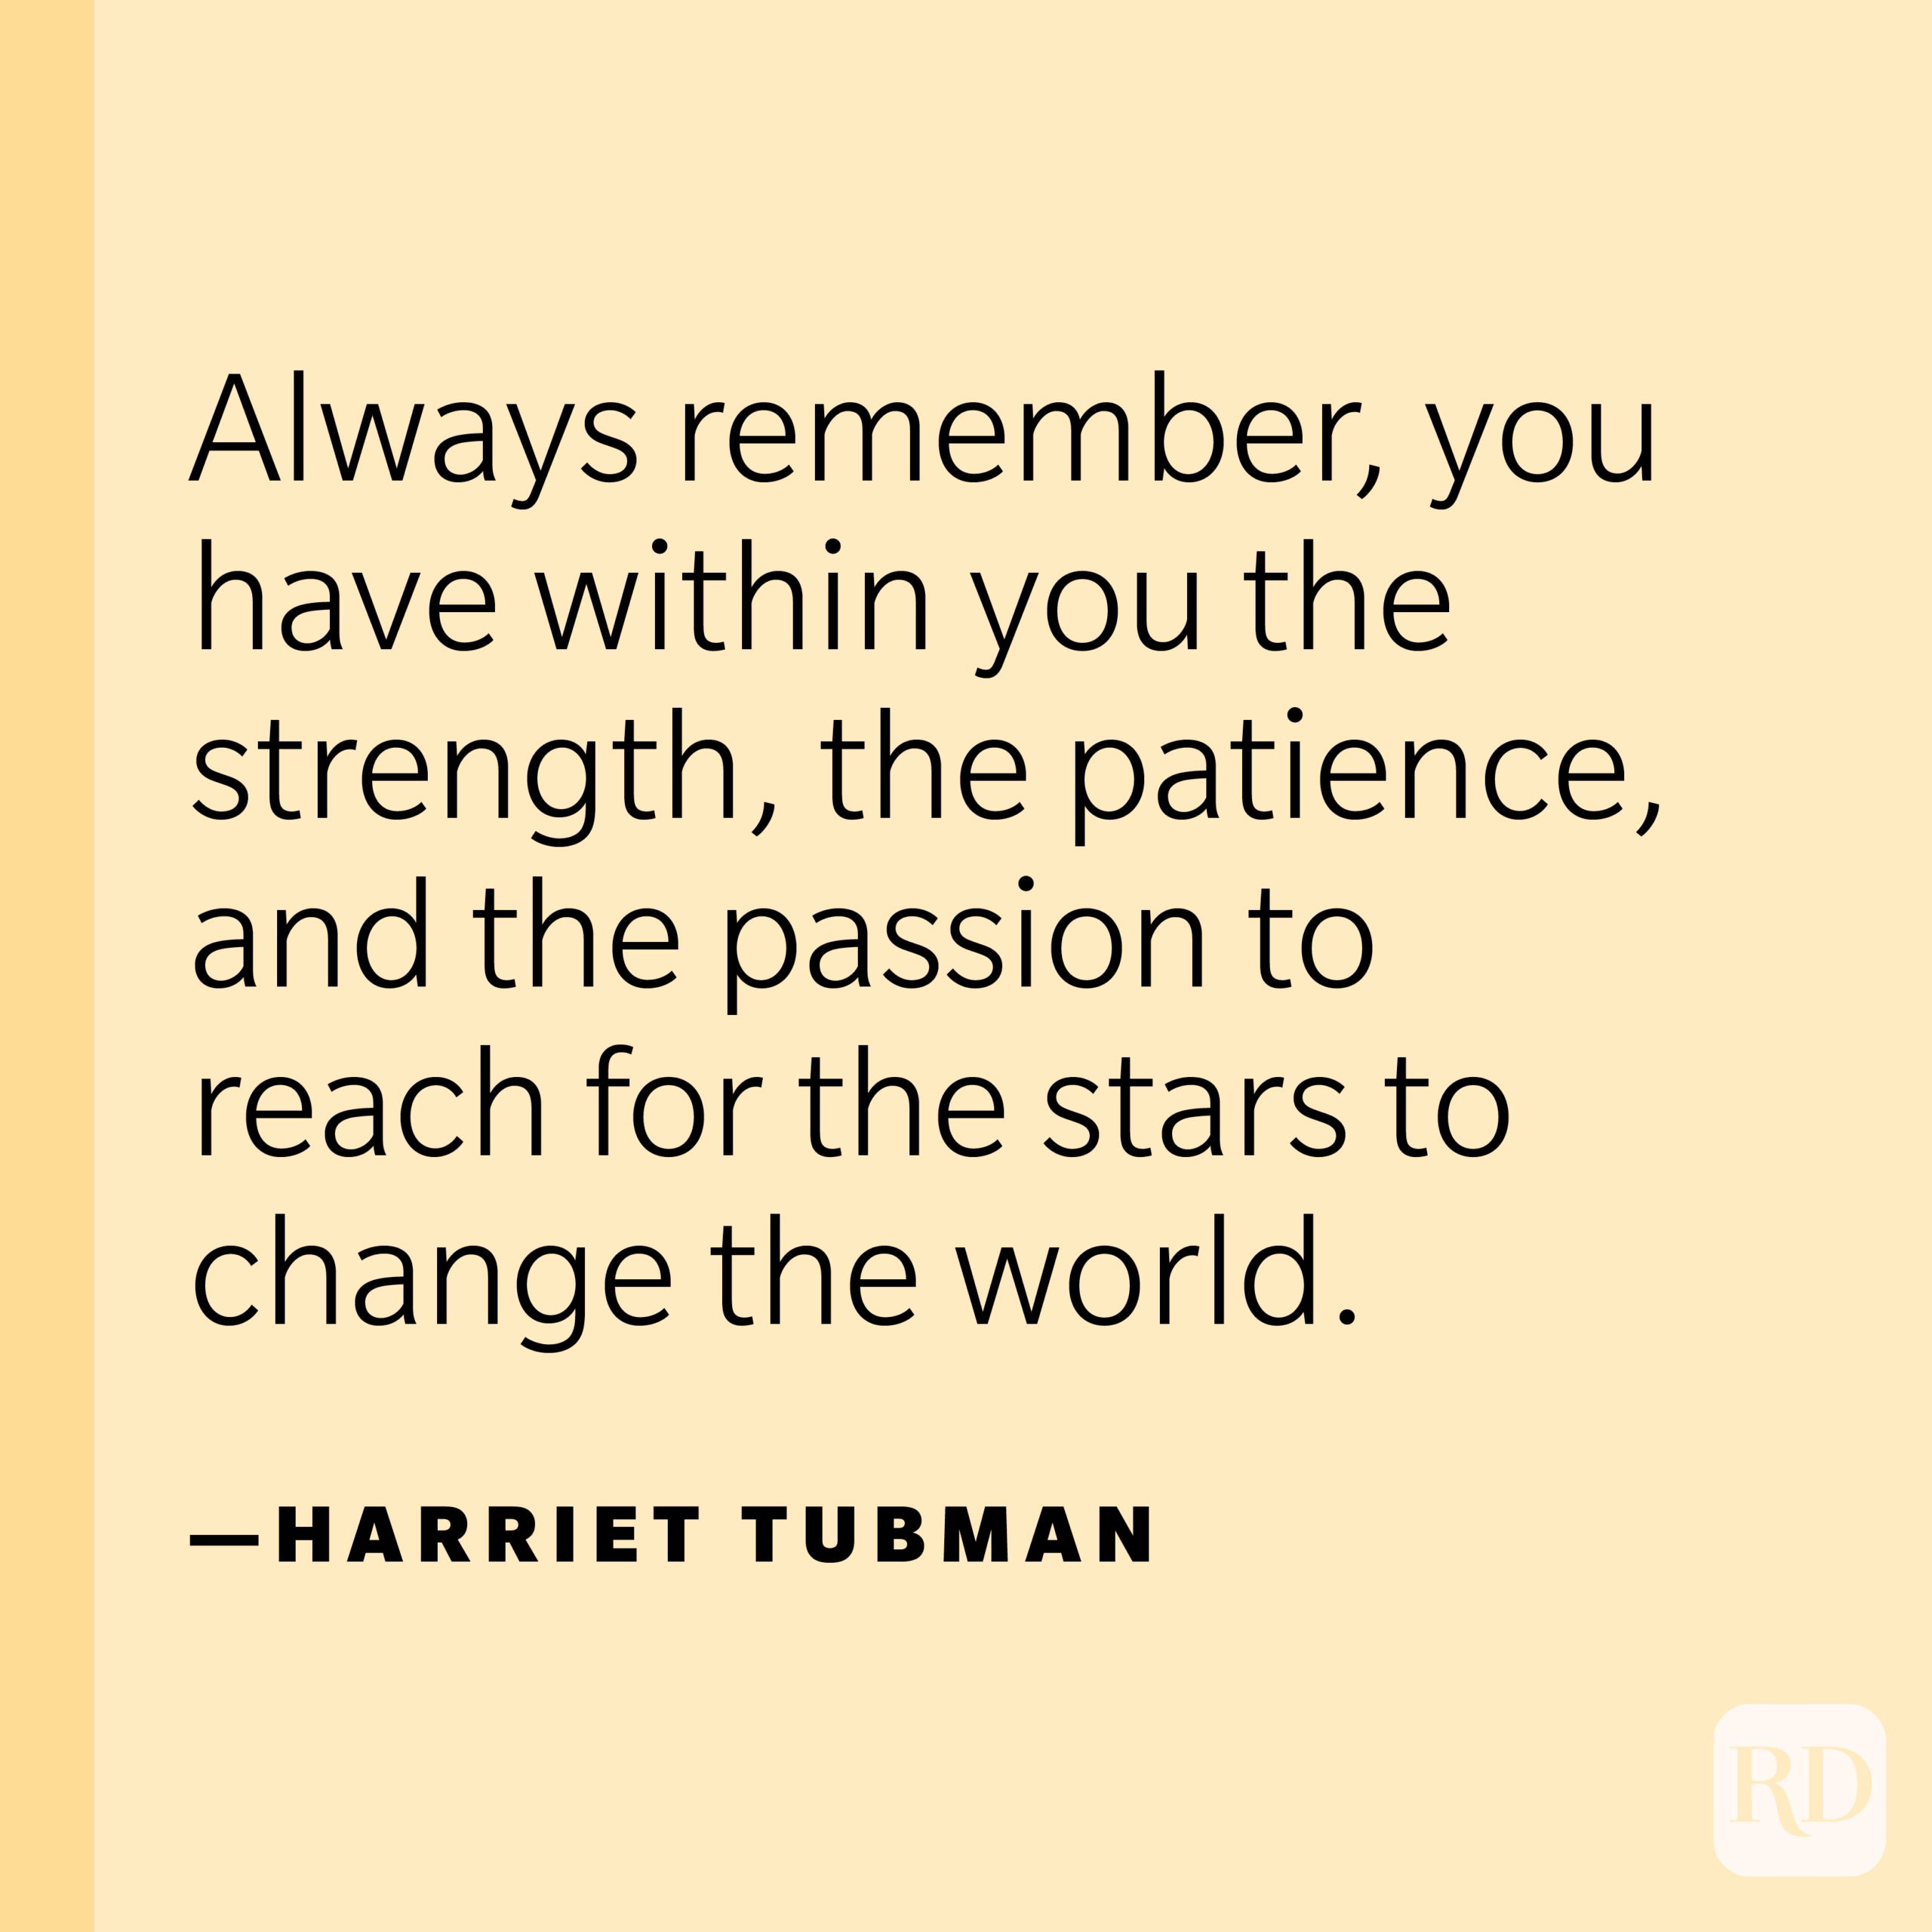 """""""Always remember, you have within you the strength, the patience, and the passion to reach for the stars to change the world.""""—Harriet Tubman."""